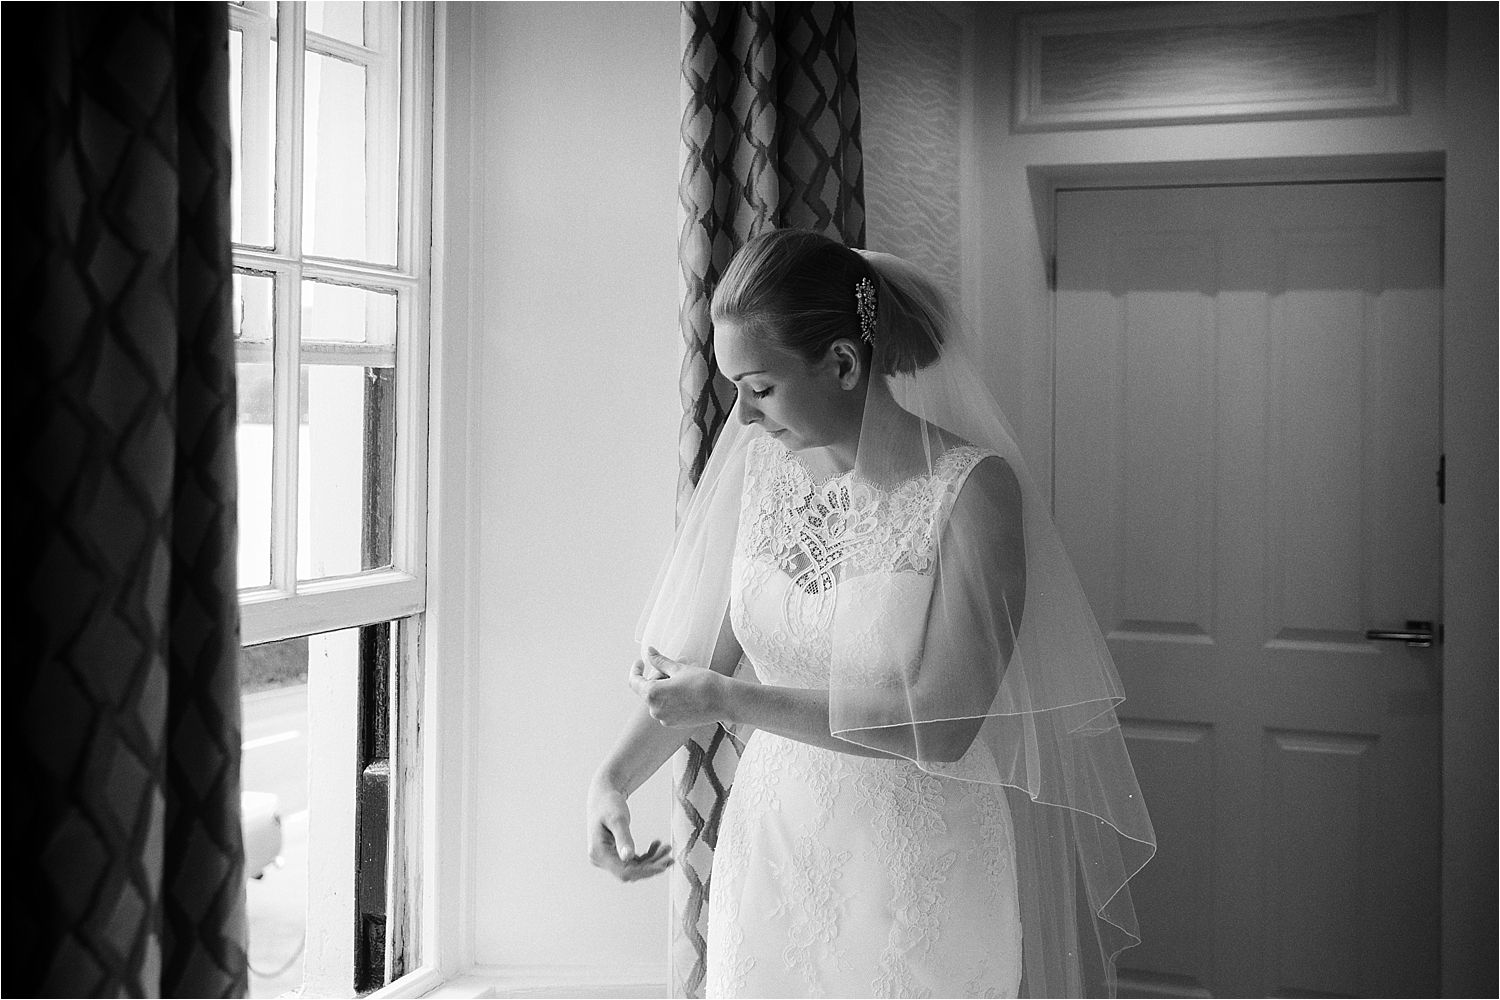 Bride dresses her veil prior to her wedding at Lake Disrtict wedding venue, Low Wood Bay